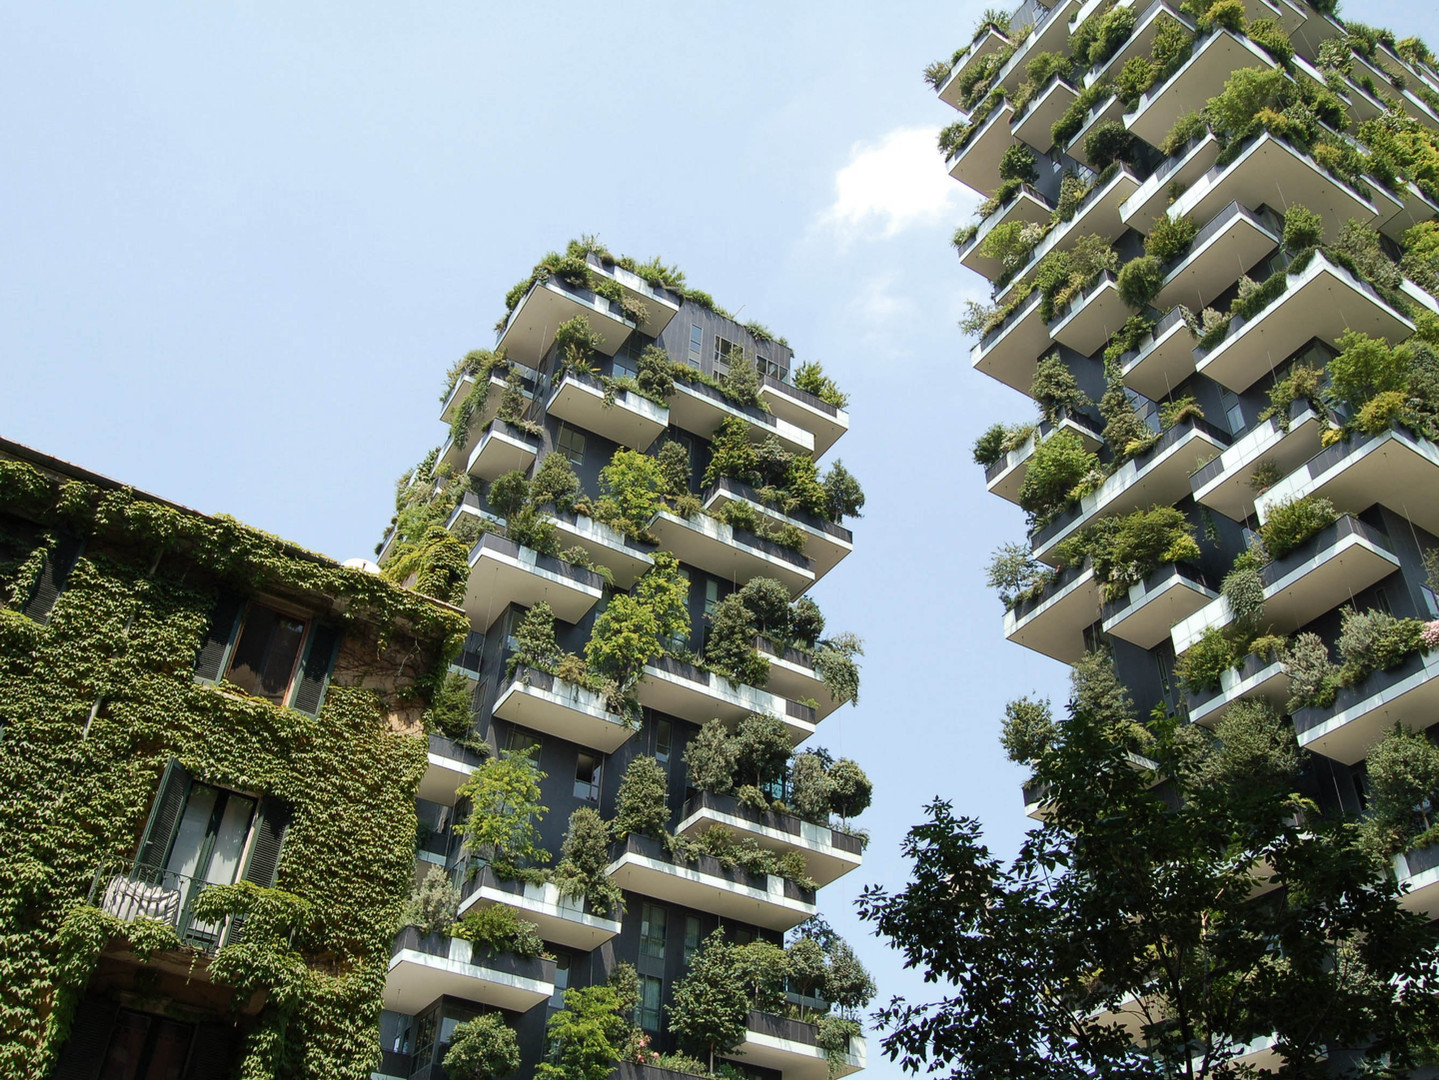 Two residential buildings with lots of plants